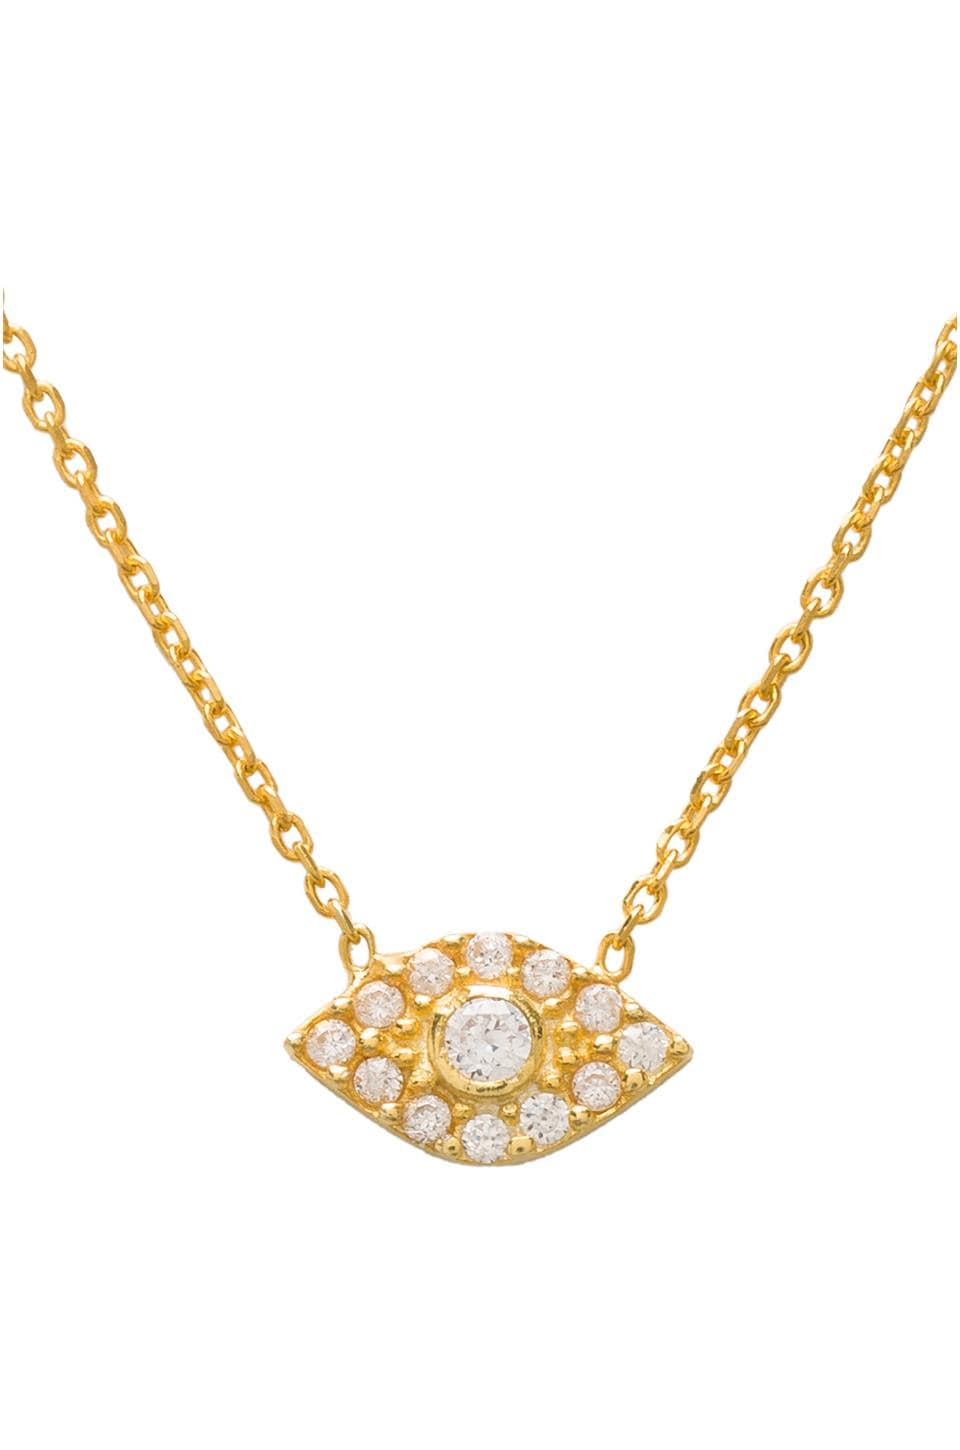 Natalie B Jewelry Natalie B Ottoman Evil Eye Necklace in Gold